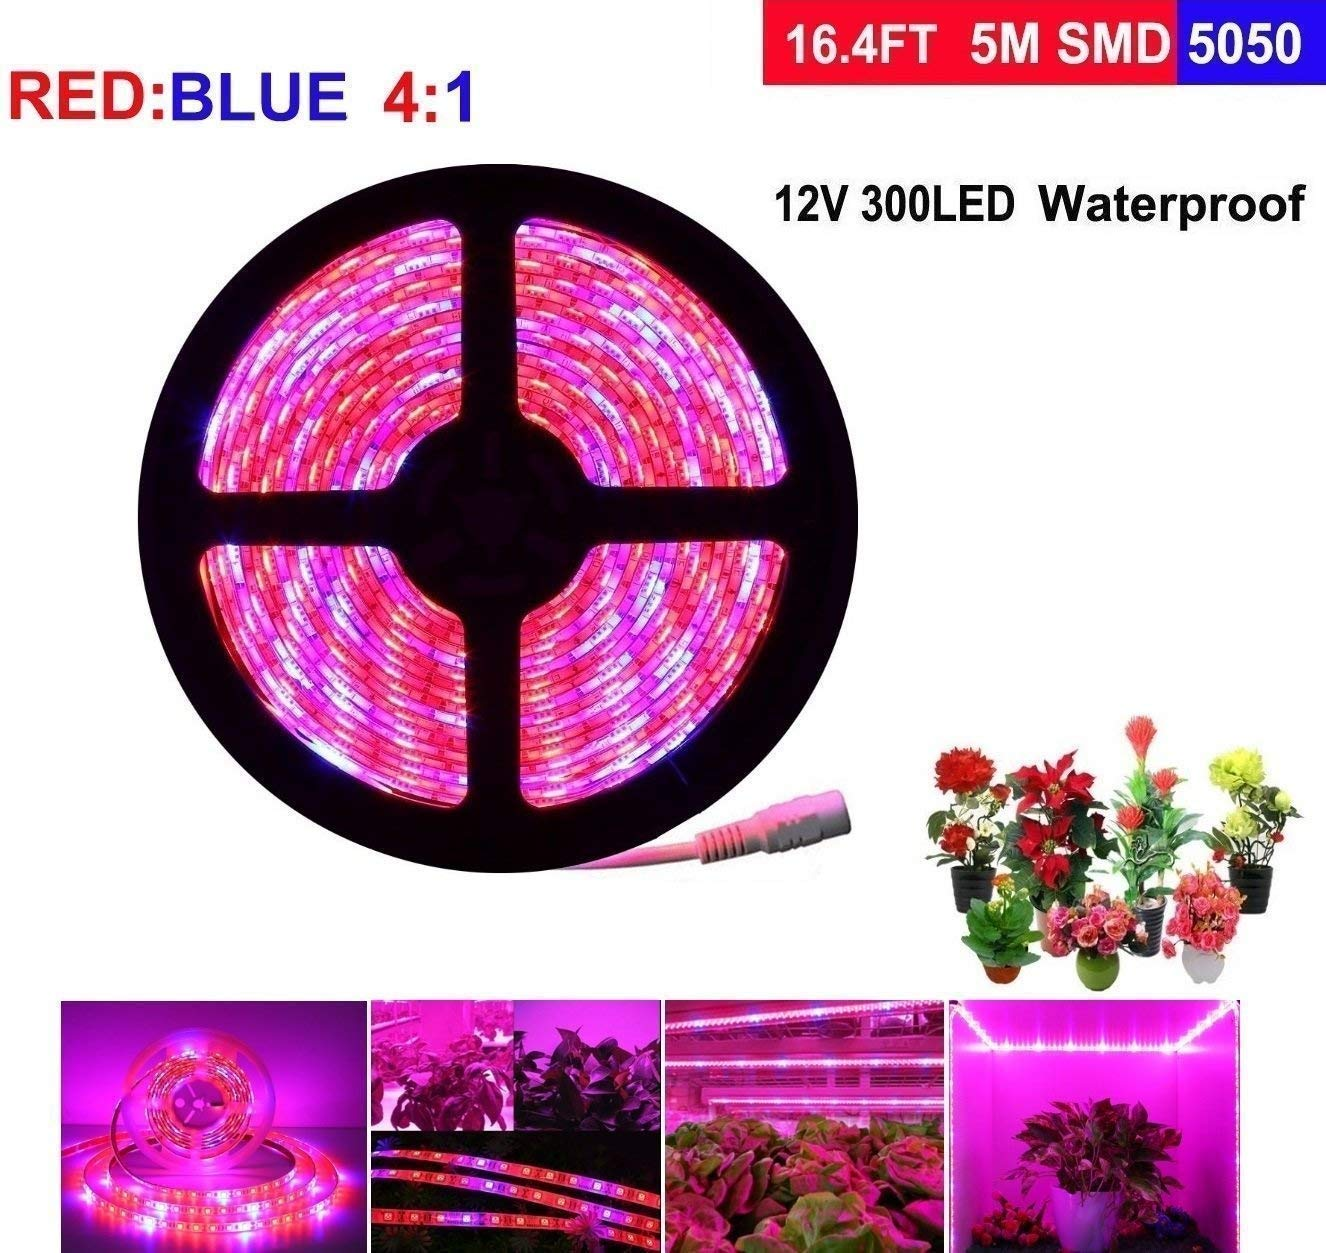 LEHOU LED Plant Grow Light, 5M/16.4ft LED Strip Lights, Waterproof Full Spectrum Red Blue 4:1 Rope Lights for Aquarium Greenhouse Hydroponic Plant, Garden Flowers Veg Grow Lights